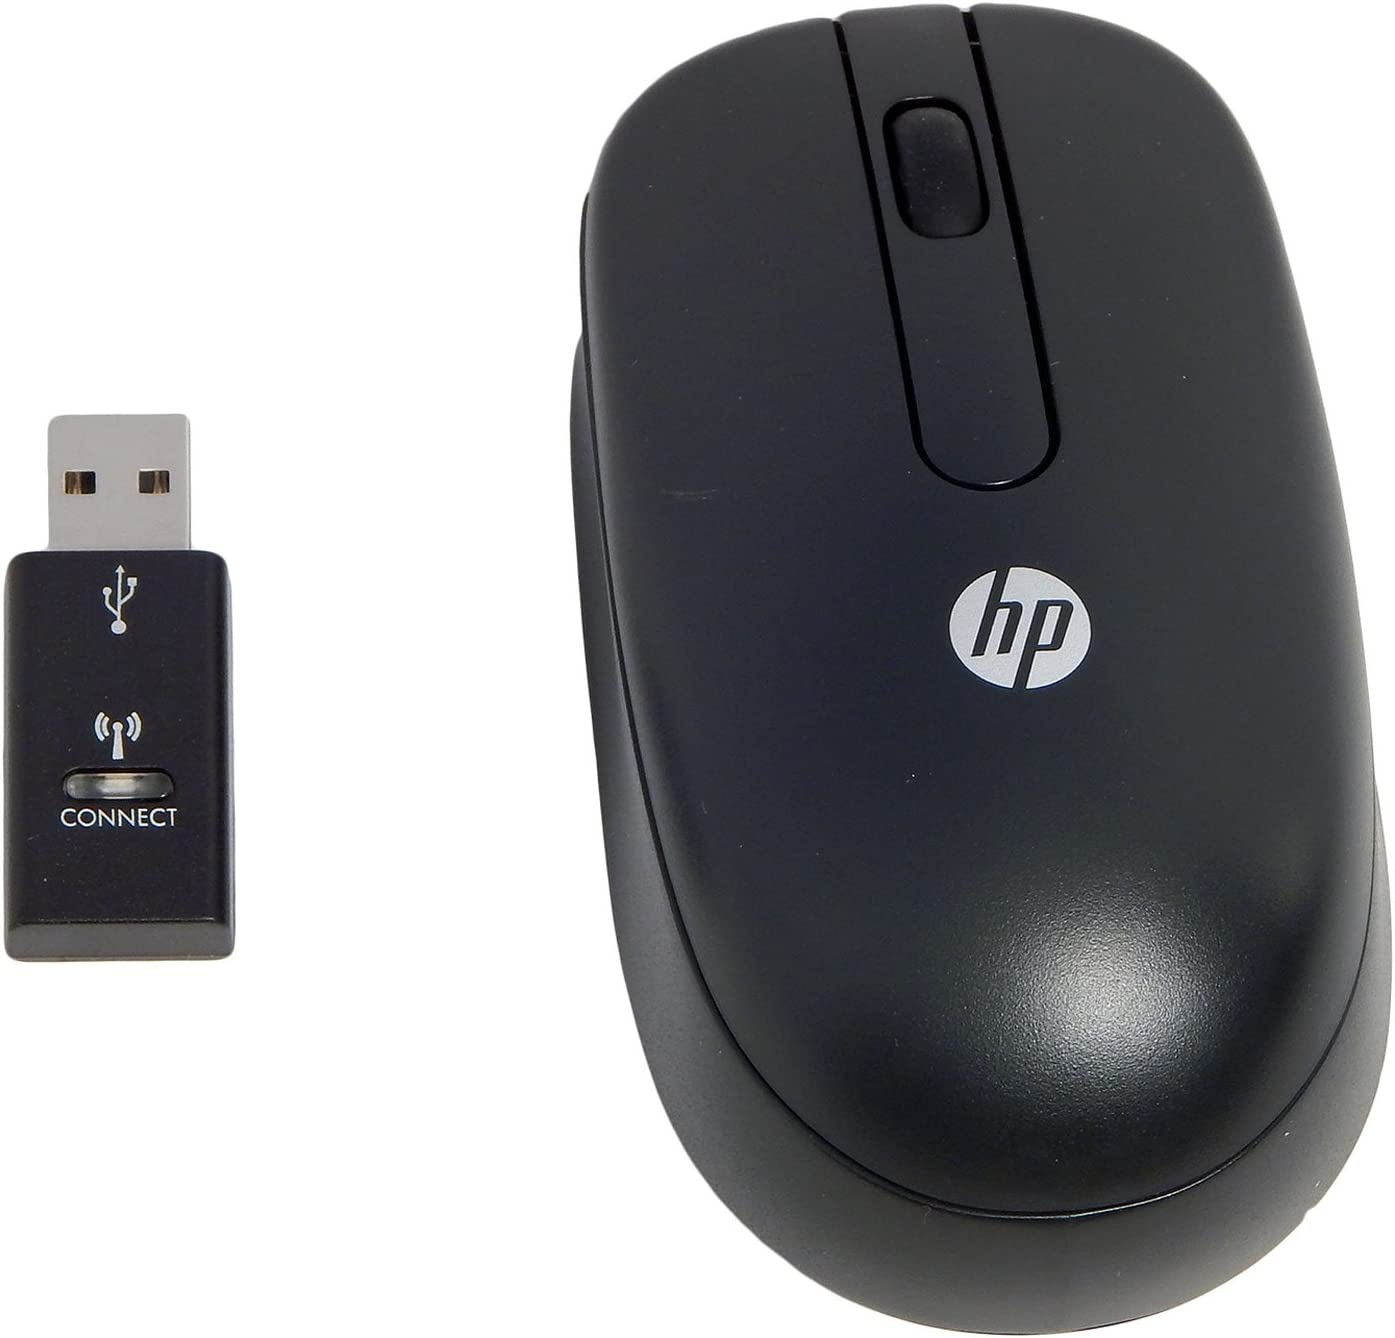 Hp 674317-001 HP Elite Wireless USB Scroll Mouse